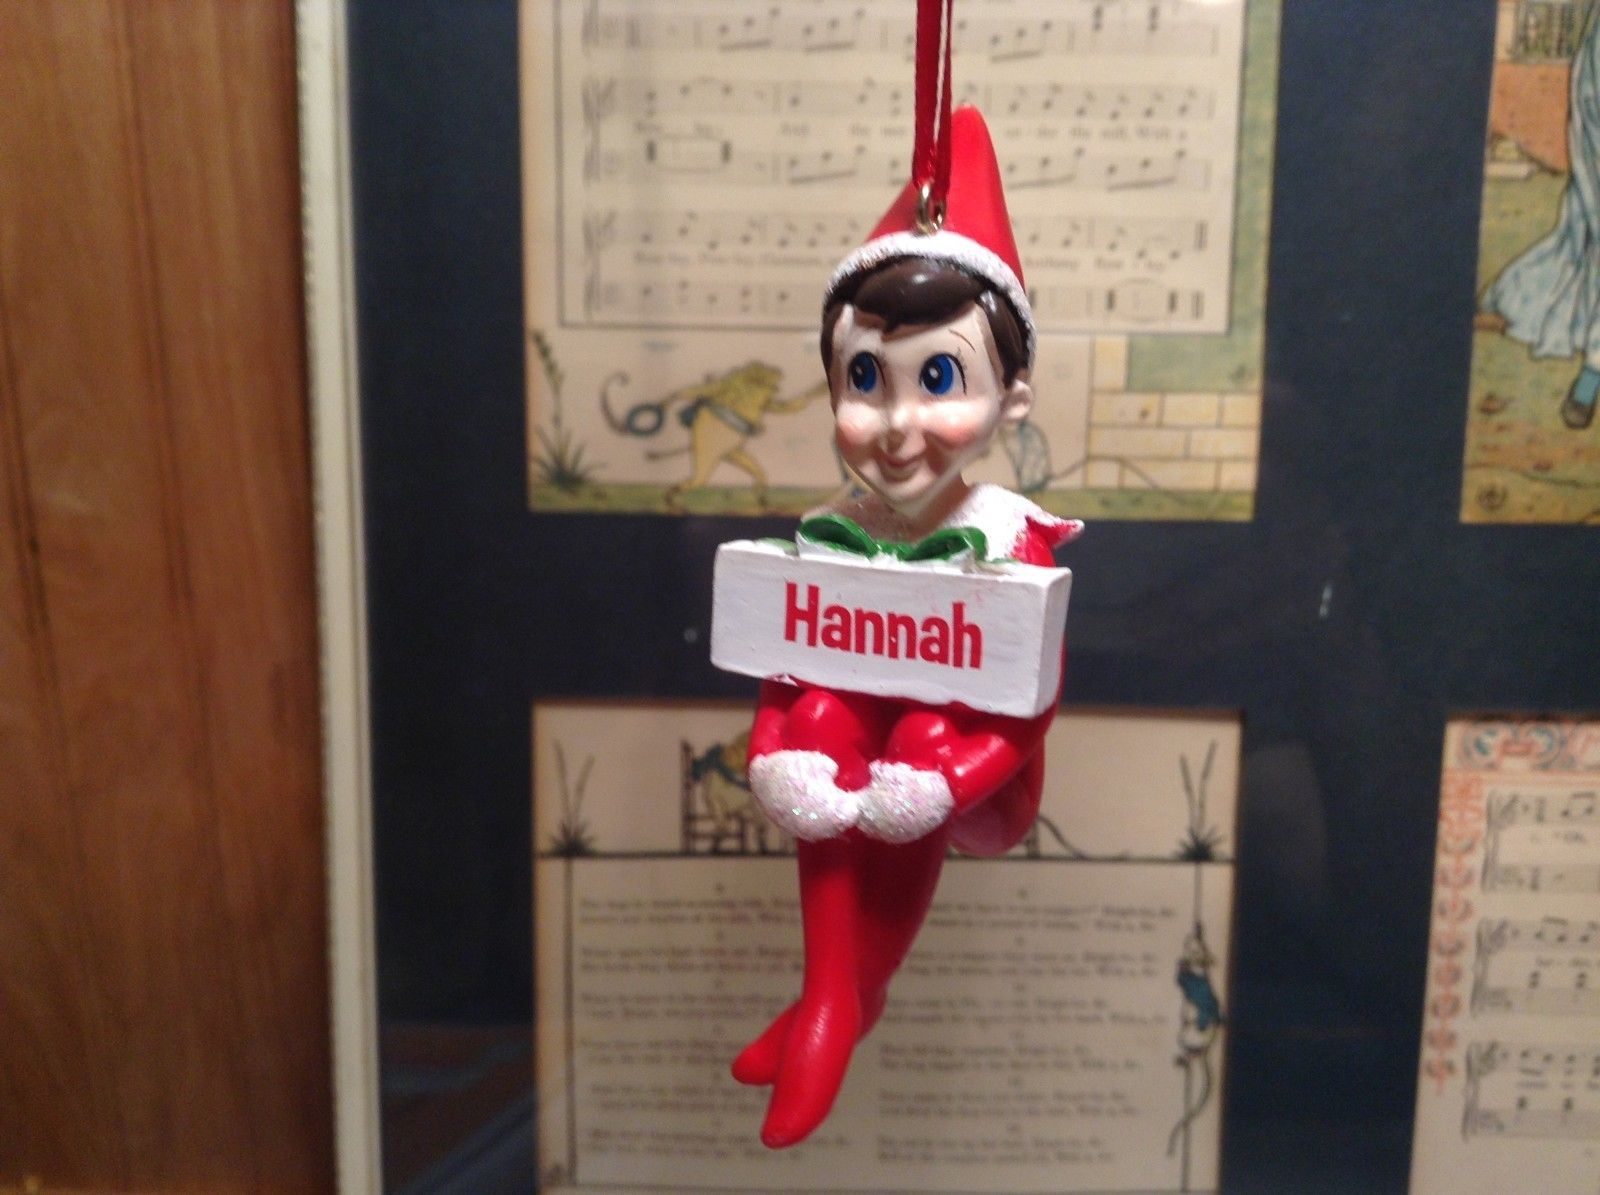 Dept 56 - Elf on the Shelf - Hannah  banner Christmas Ornament